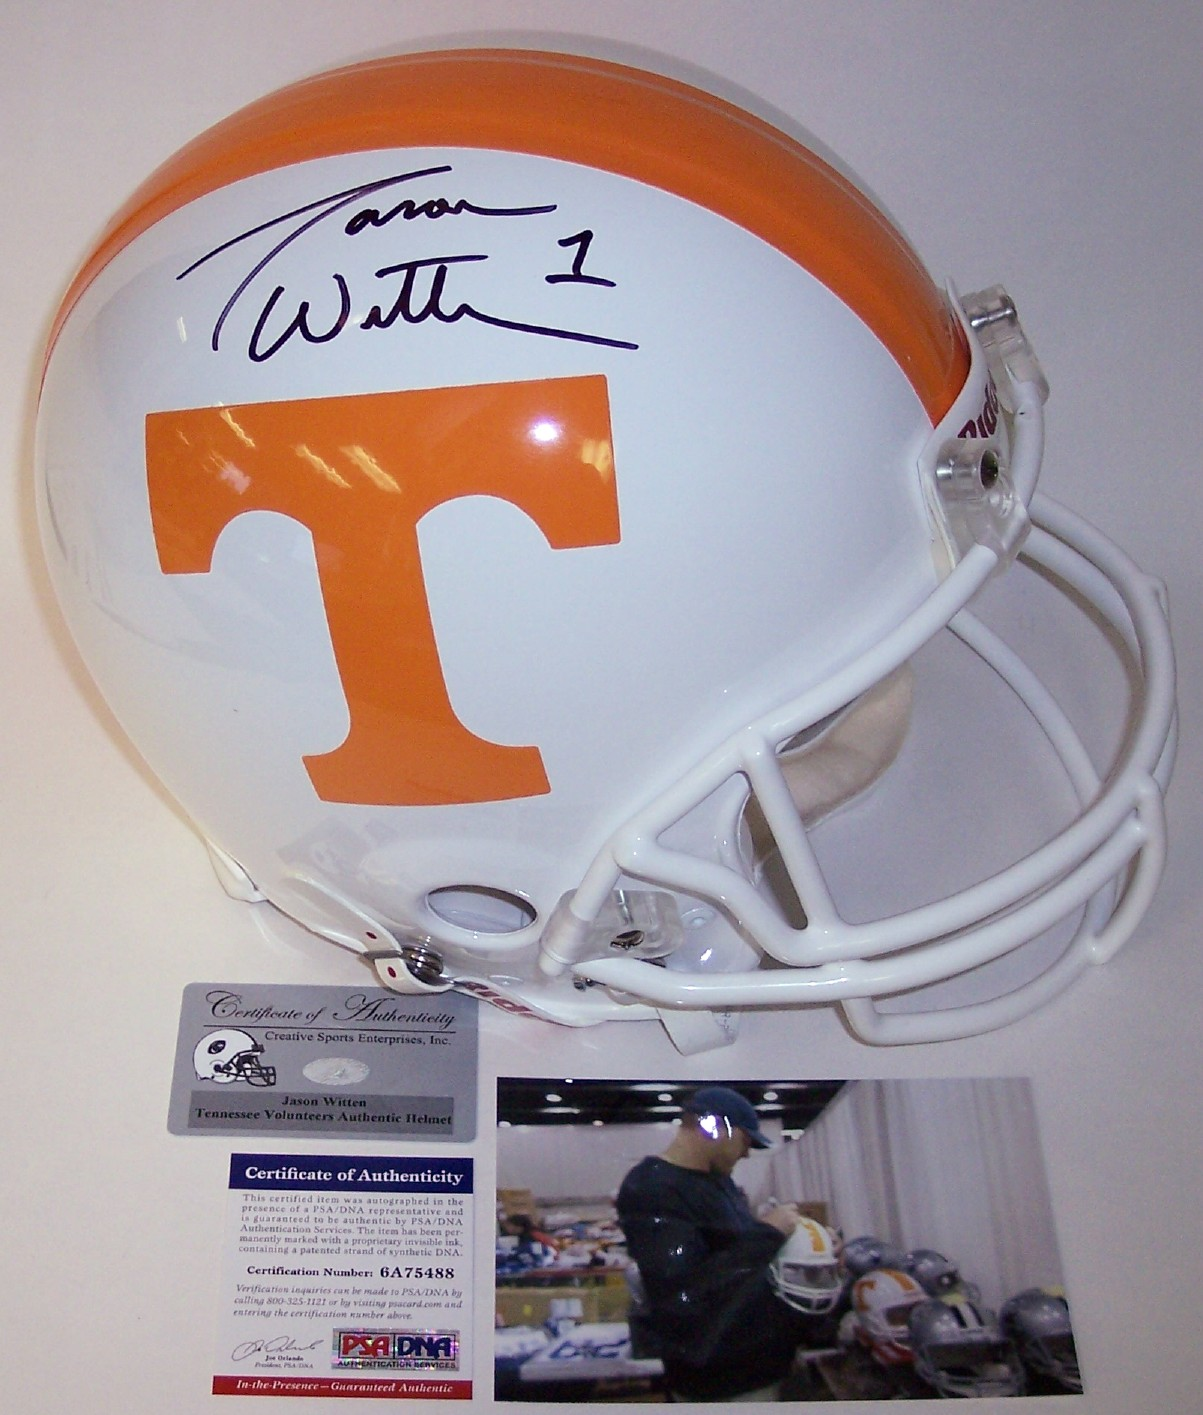 36db63af4 Jason Witten - Autographed Official Full Size Riddell Authentic Proline  Football Helmet - Tennessee Vols - PSA/DNA